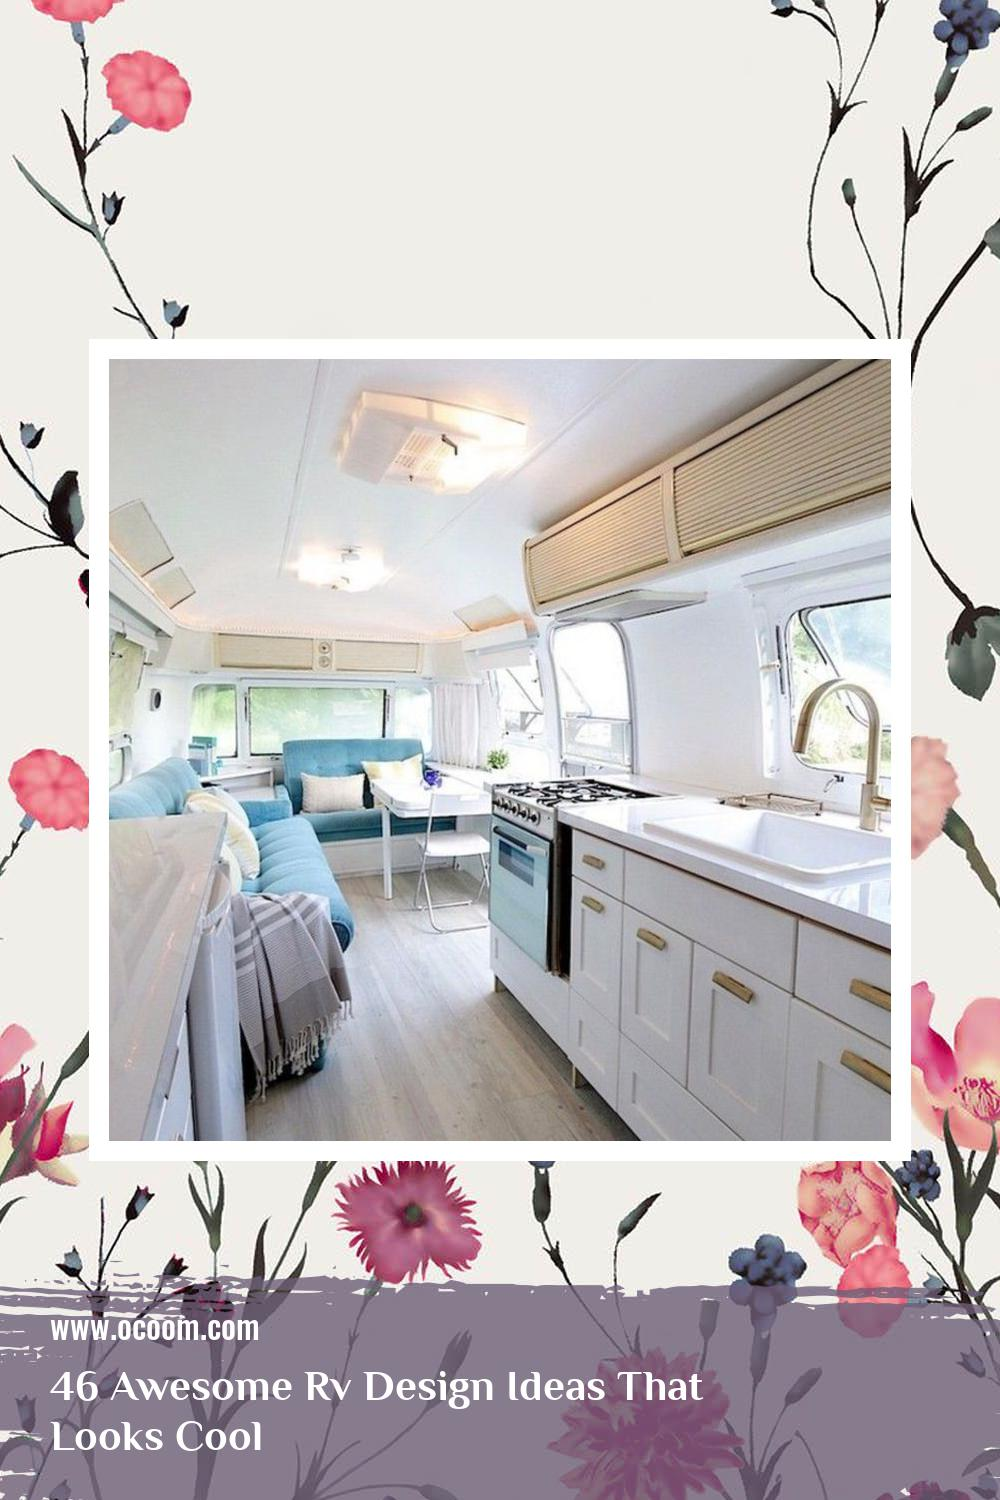 46 Awesome Rv Design Ideas That Looks Cool 27